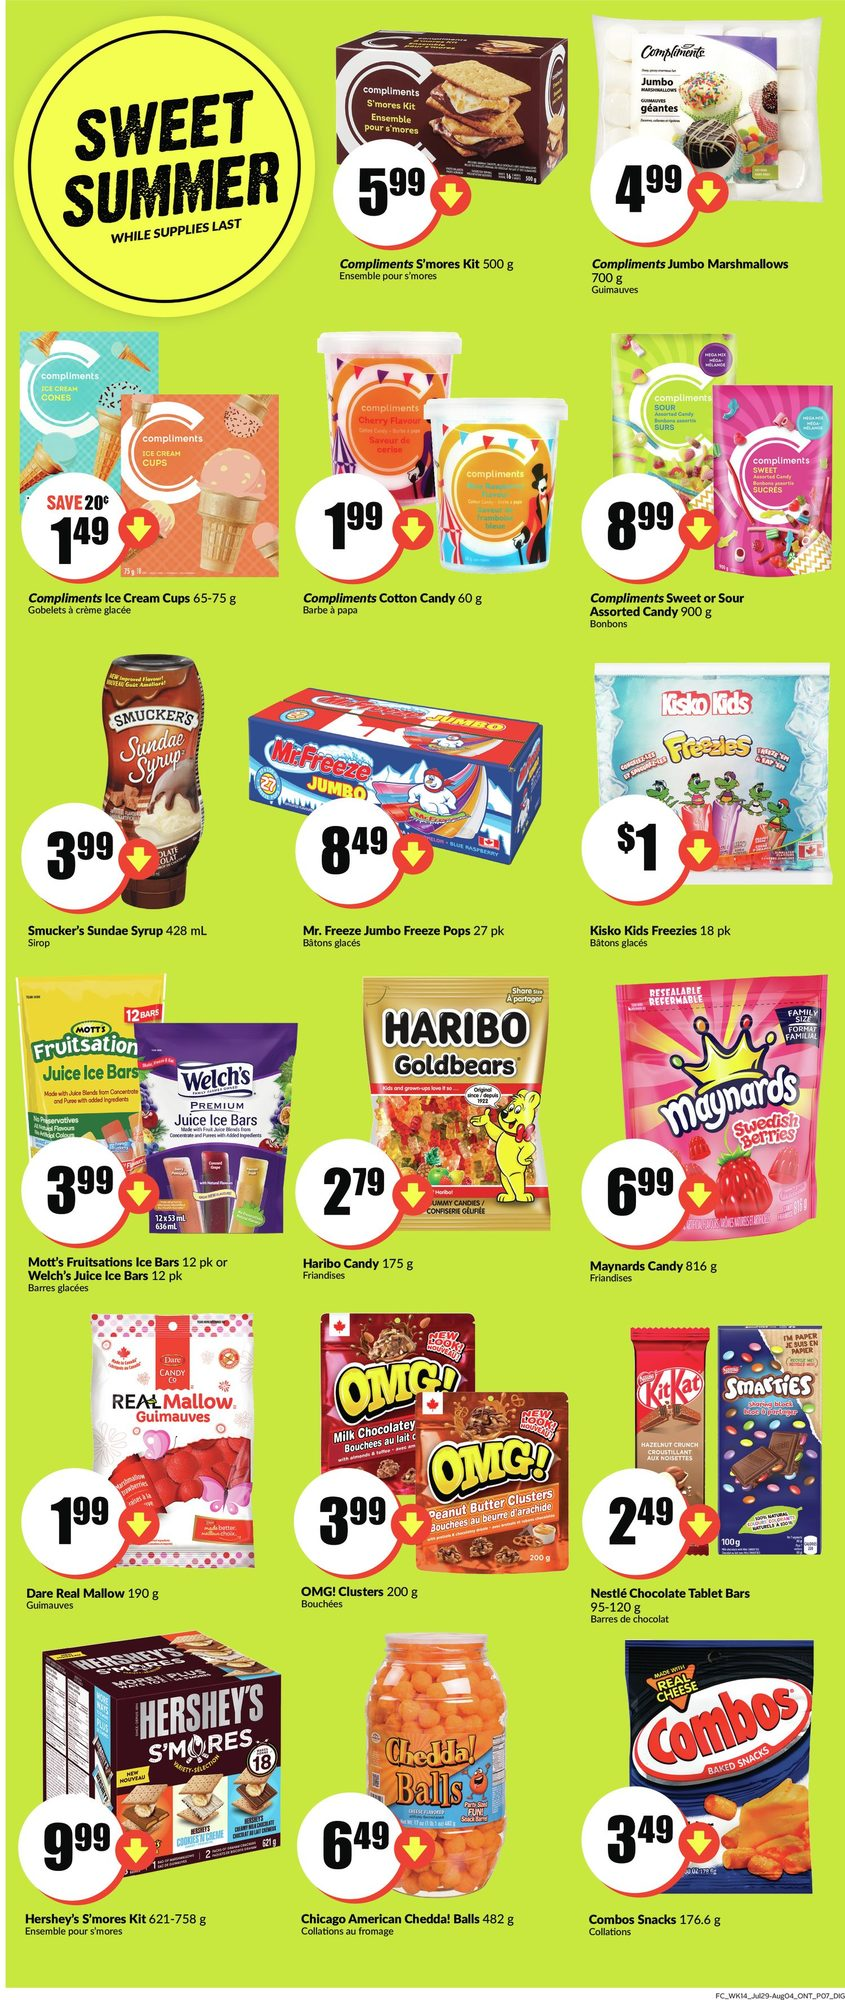 FreshCo - Weekly Flyer Specials - Page 9